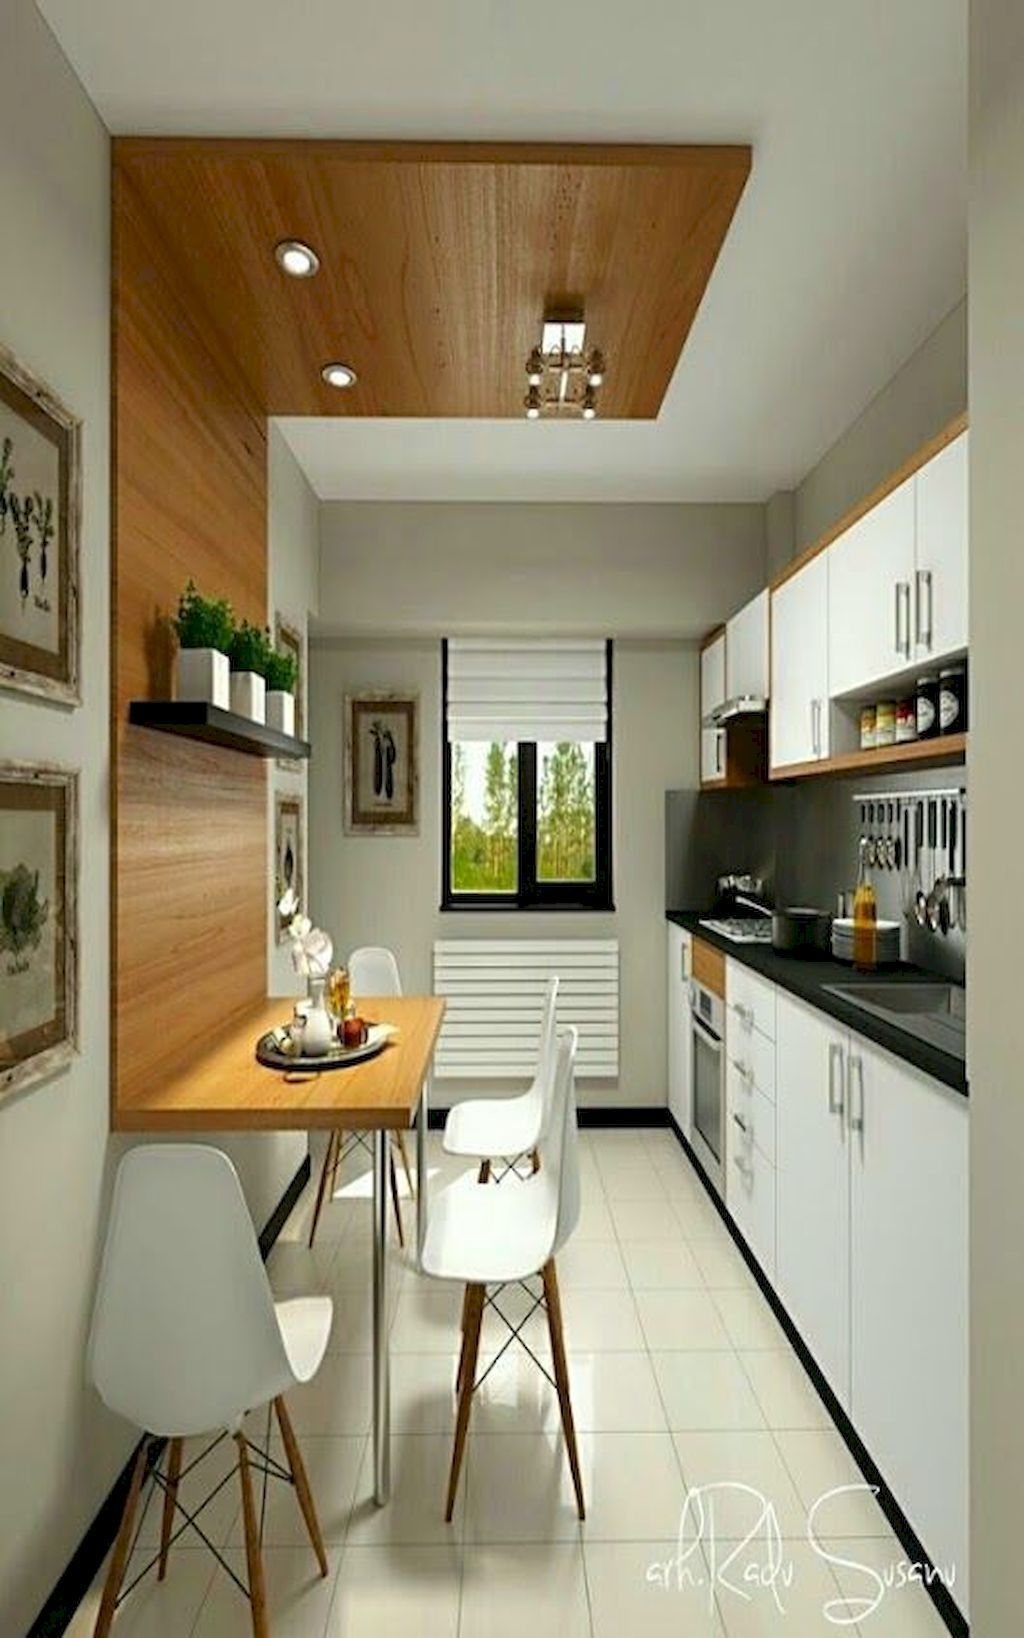 49 Small Kitchen Ideas That Will Make You Feel Roomy ...